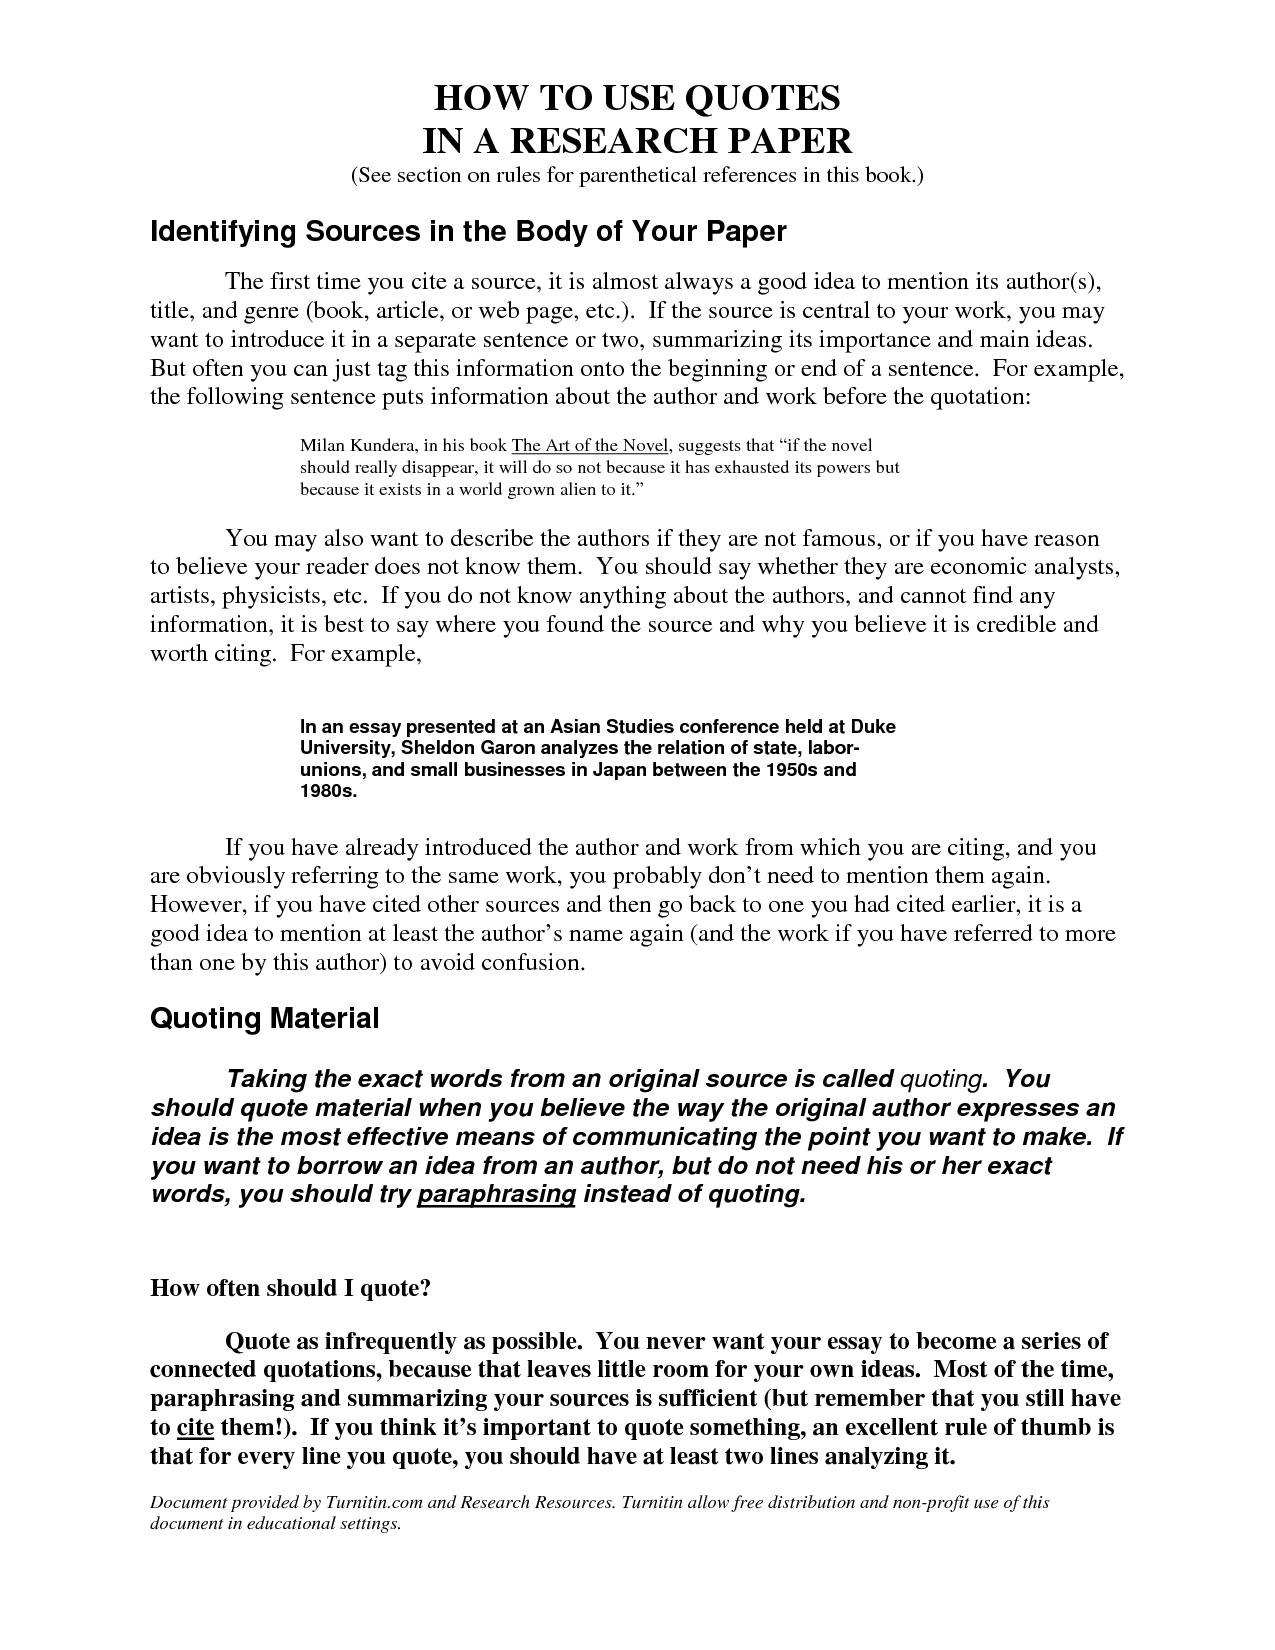 quotes and citations essay What follows are some general guidelines for referring to the works of others in your essay  in-text citation capitalization, quotes, and italics/underlining.